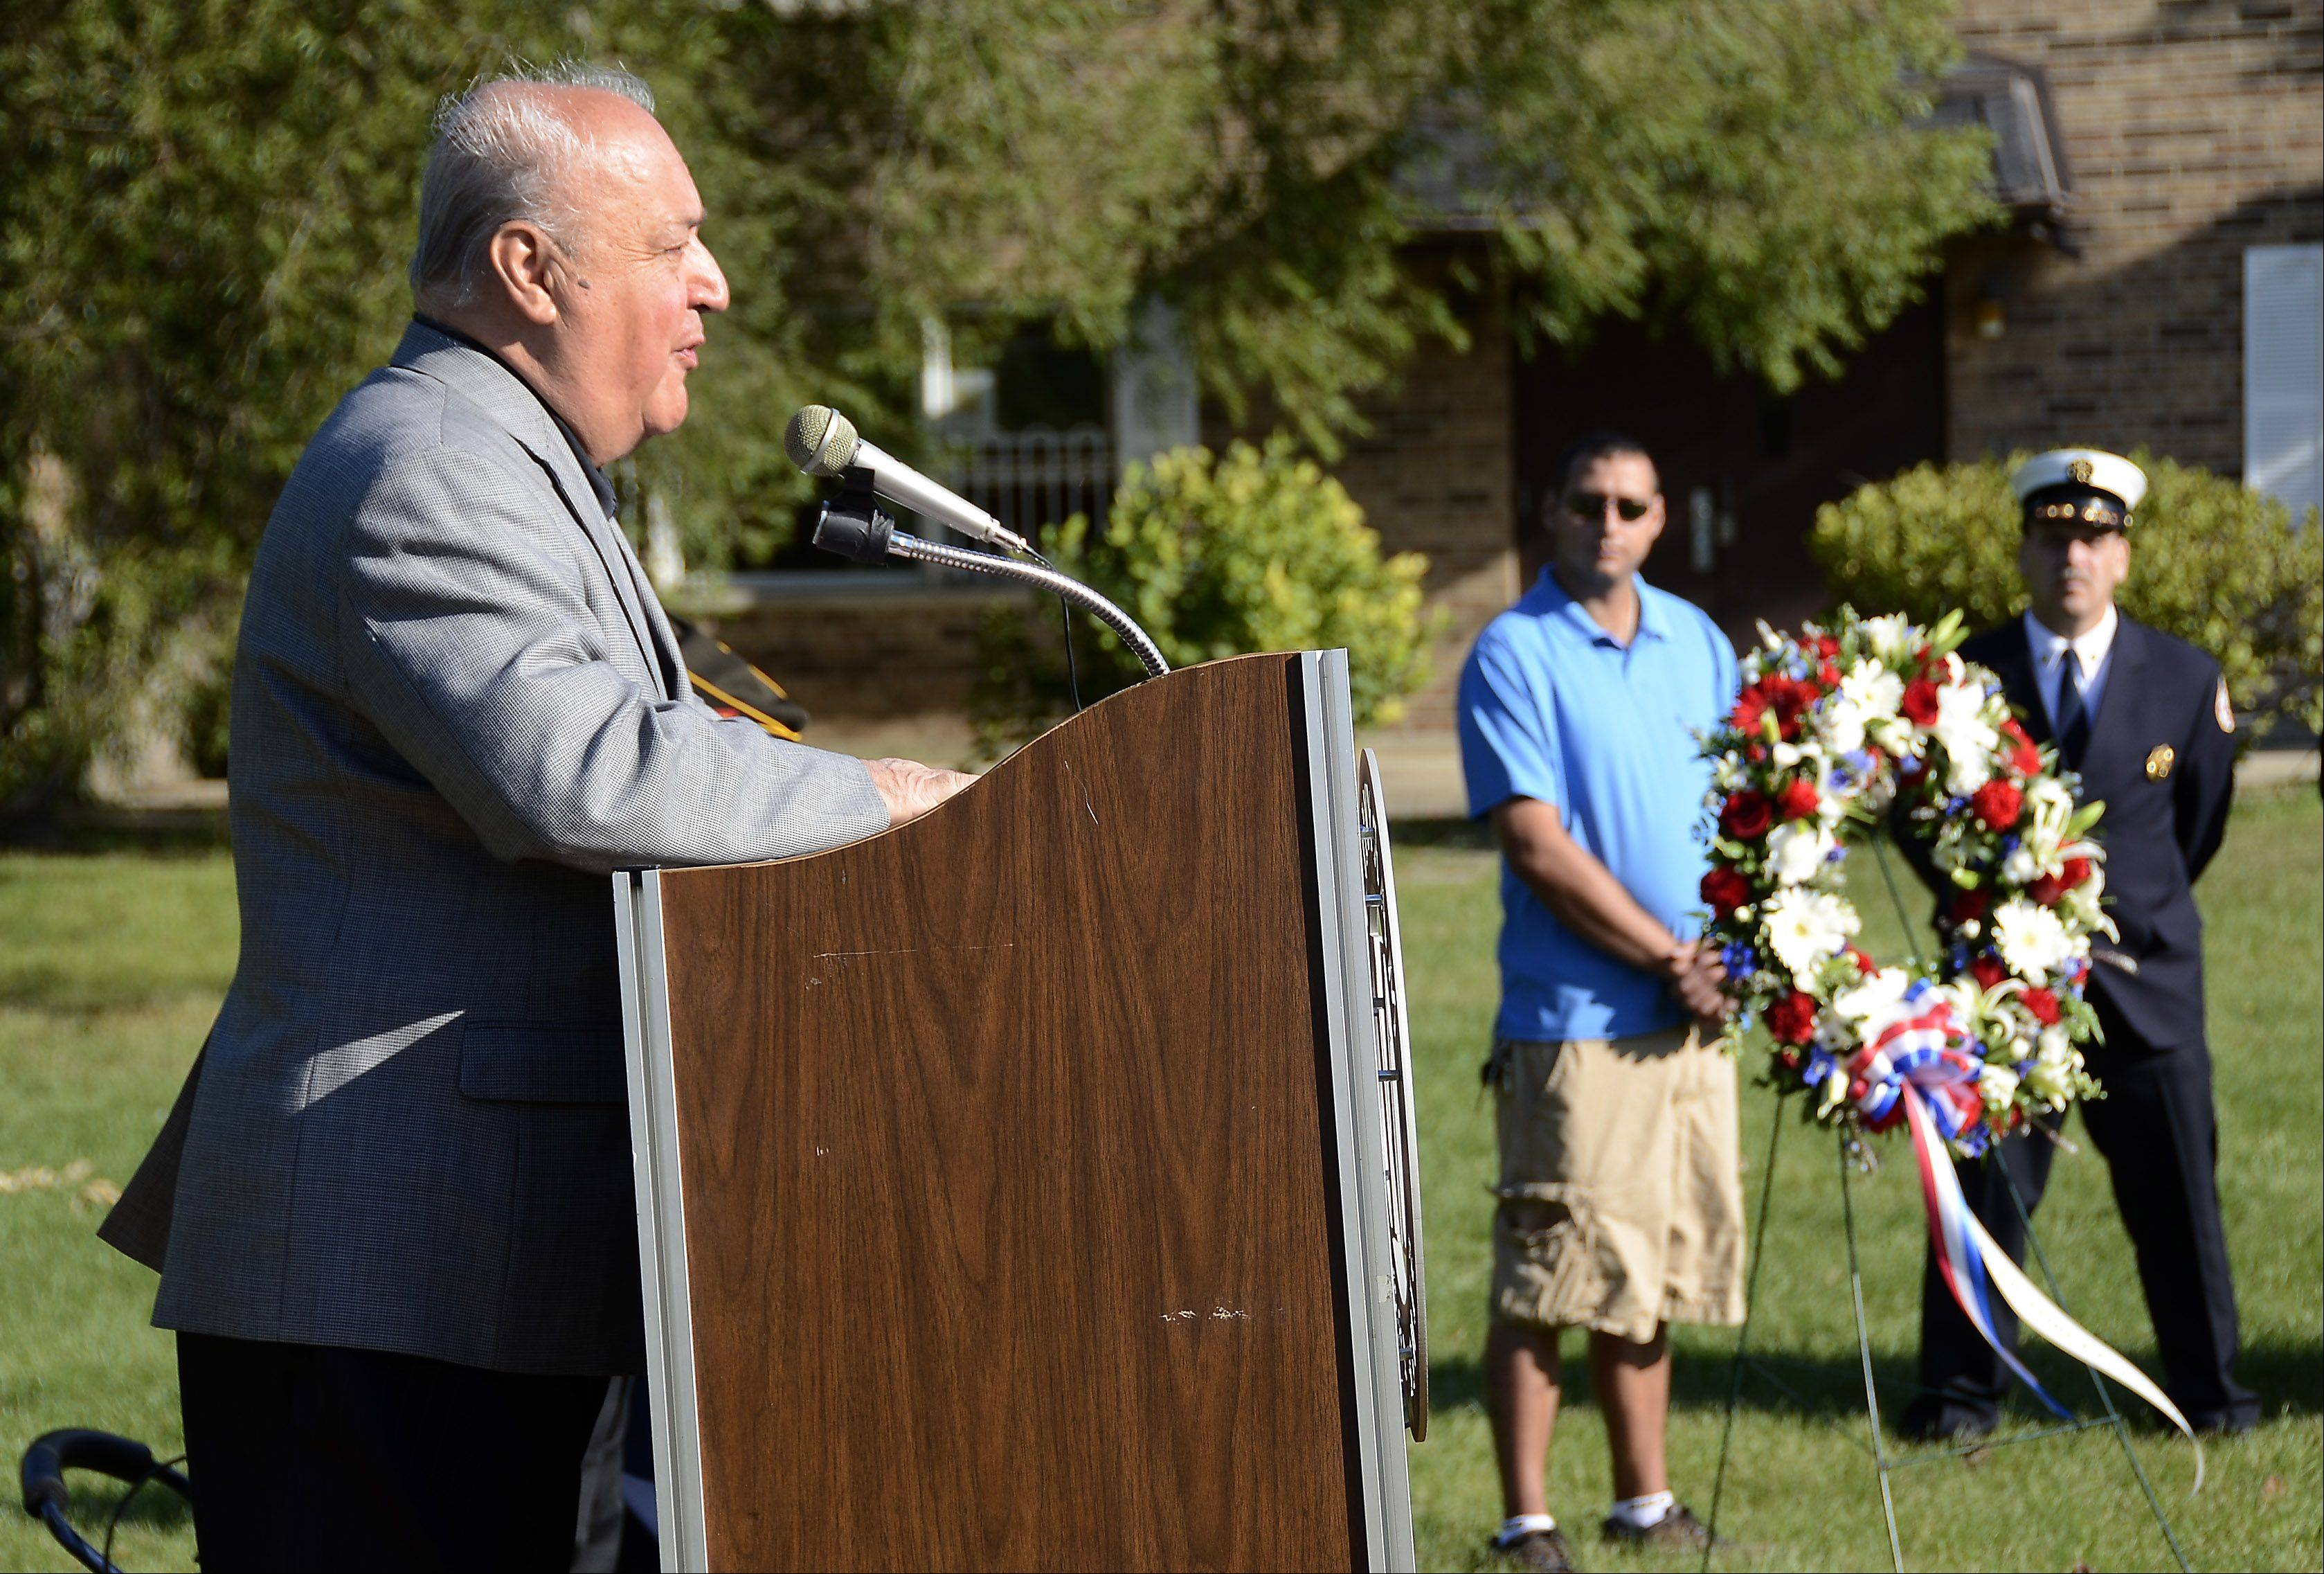 Former Des Plaines Mayor Tony Arredia speaks during a 9/11 Patriot Day celebration at Maryville Academy in Des Plaines.